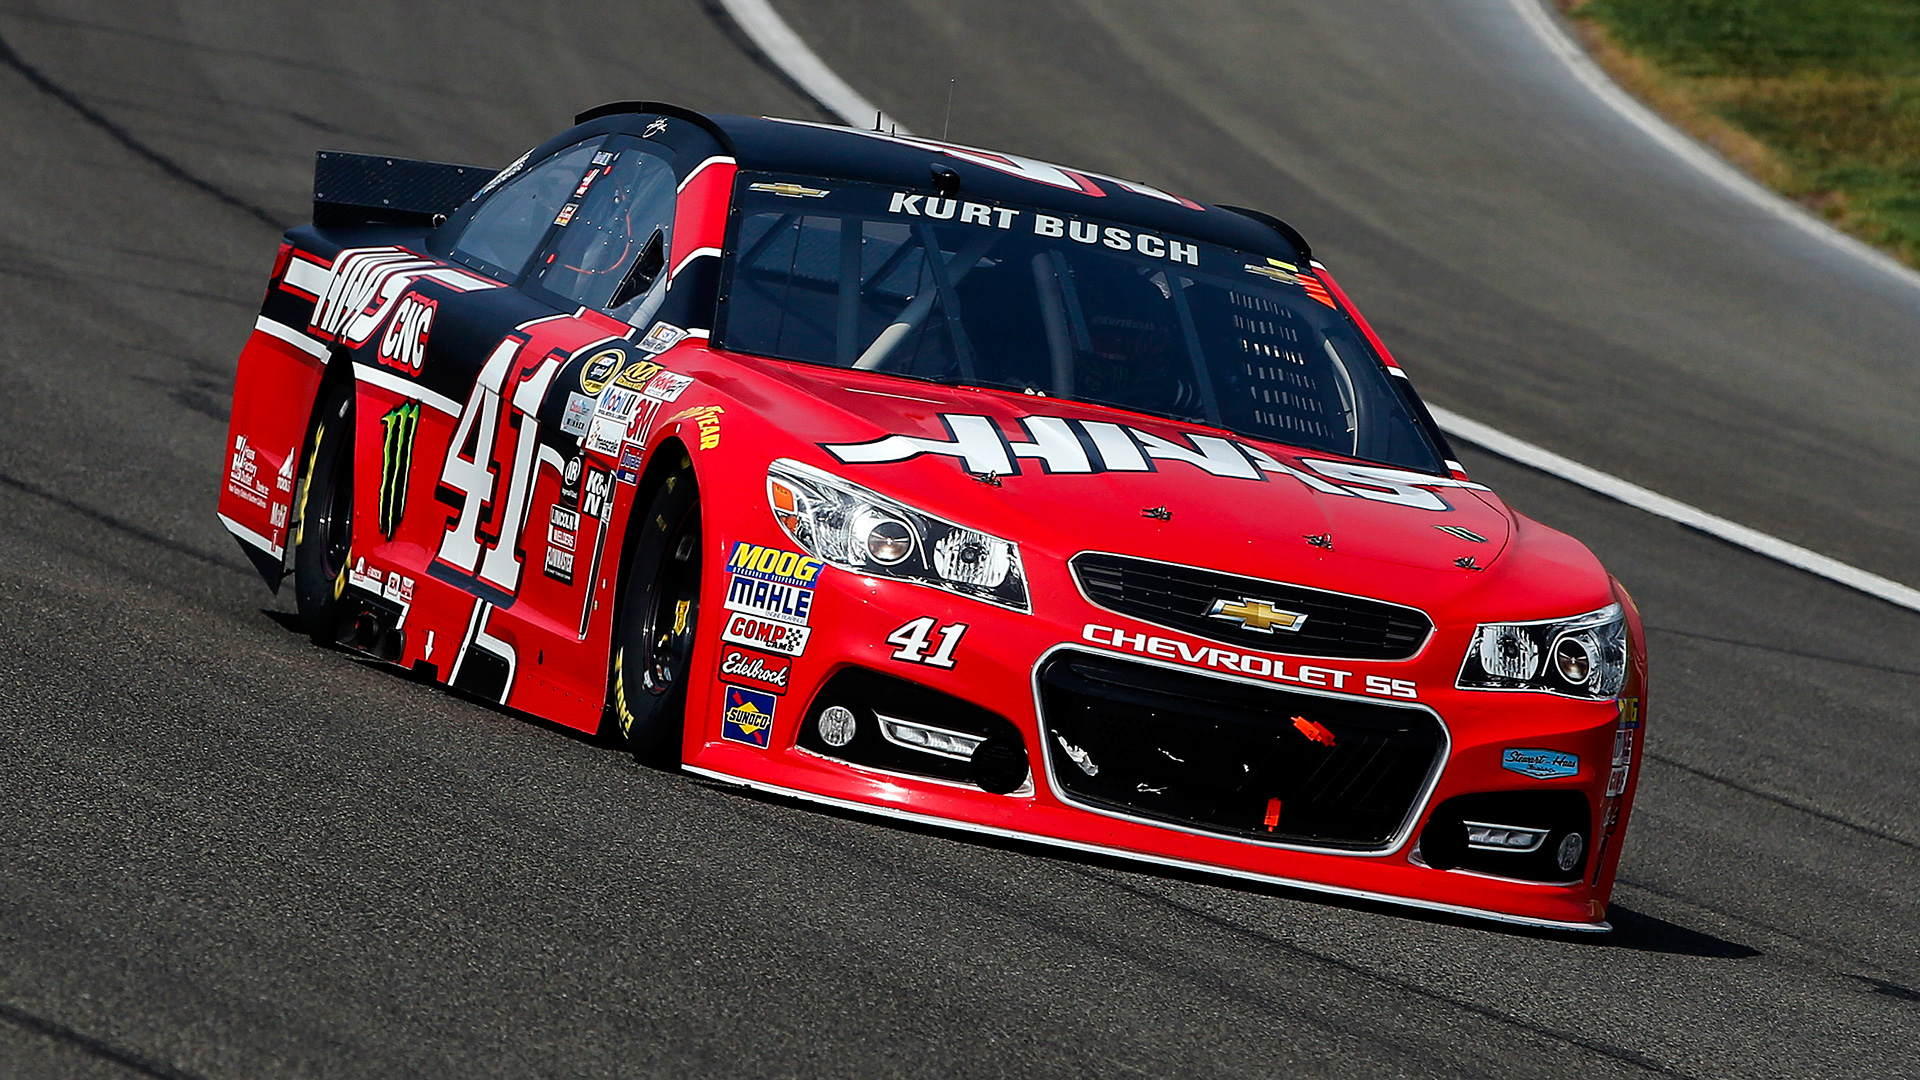 NASCAR odds and driver ratings - Kurt Busch fast, Harvick mortal